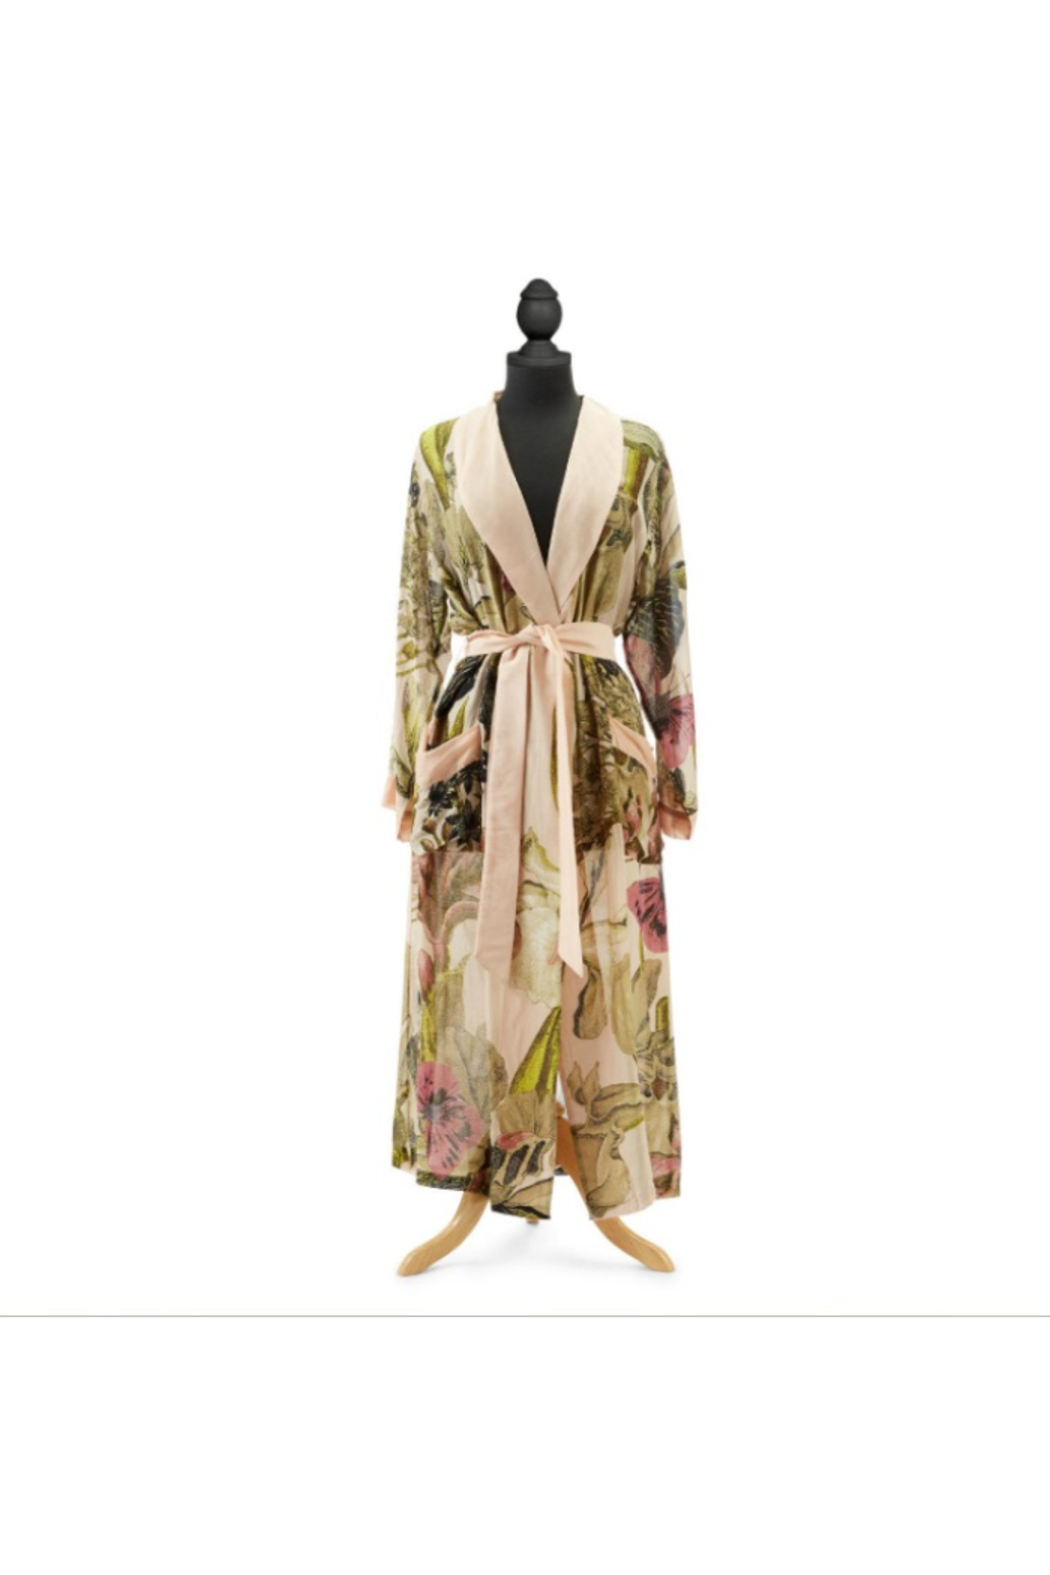 The Birds Nest LADIES ROBE - Front Cropped Image